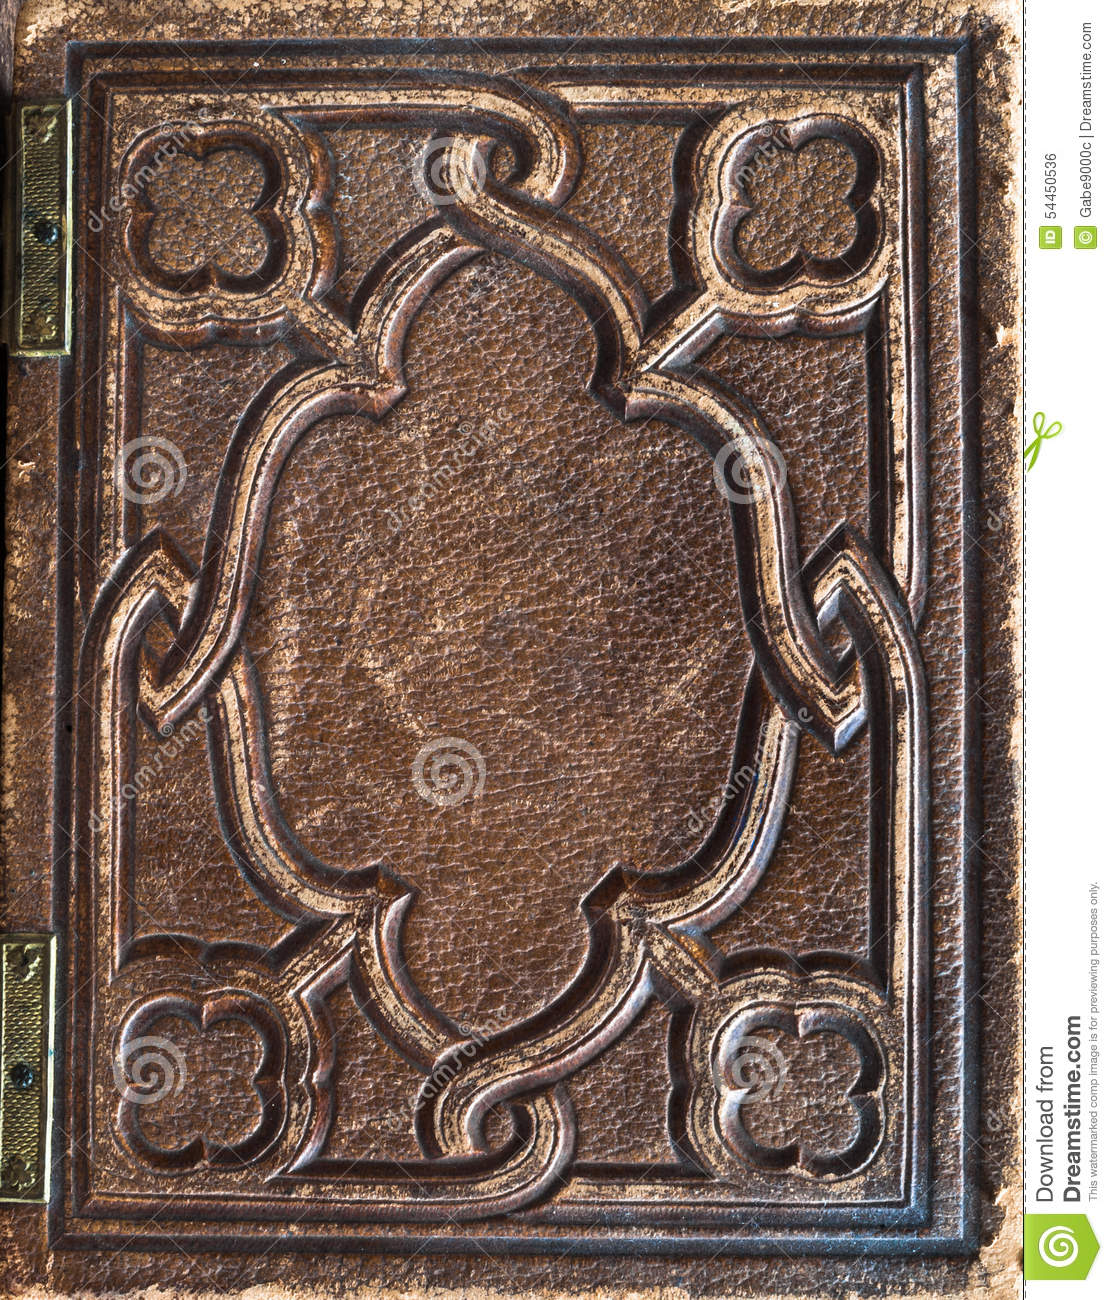 Old Fashioned Book Cover : Old vintage leather book cover stock photo image of